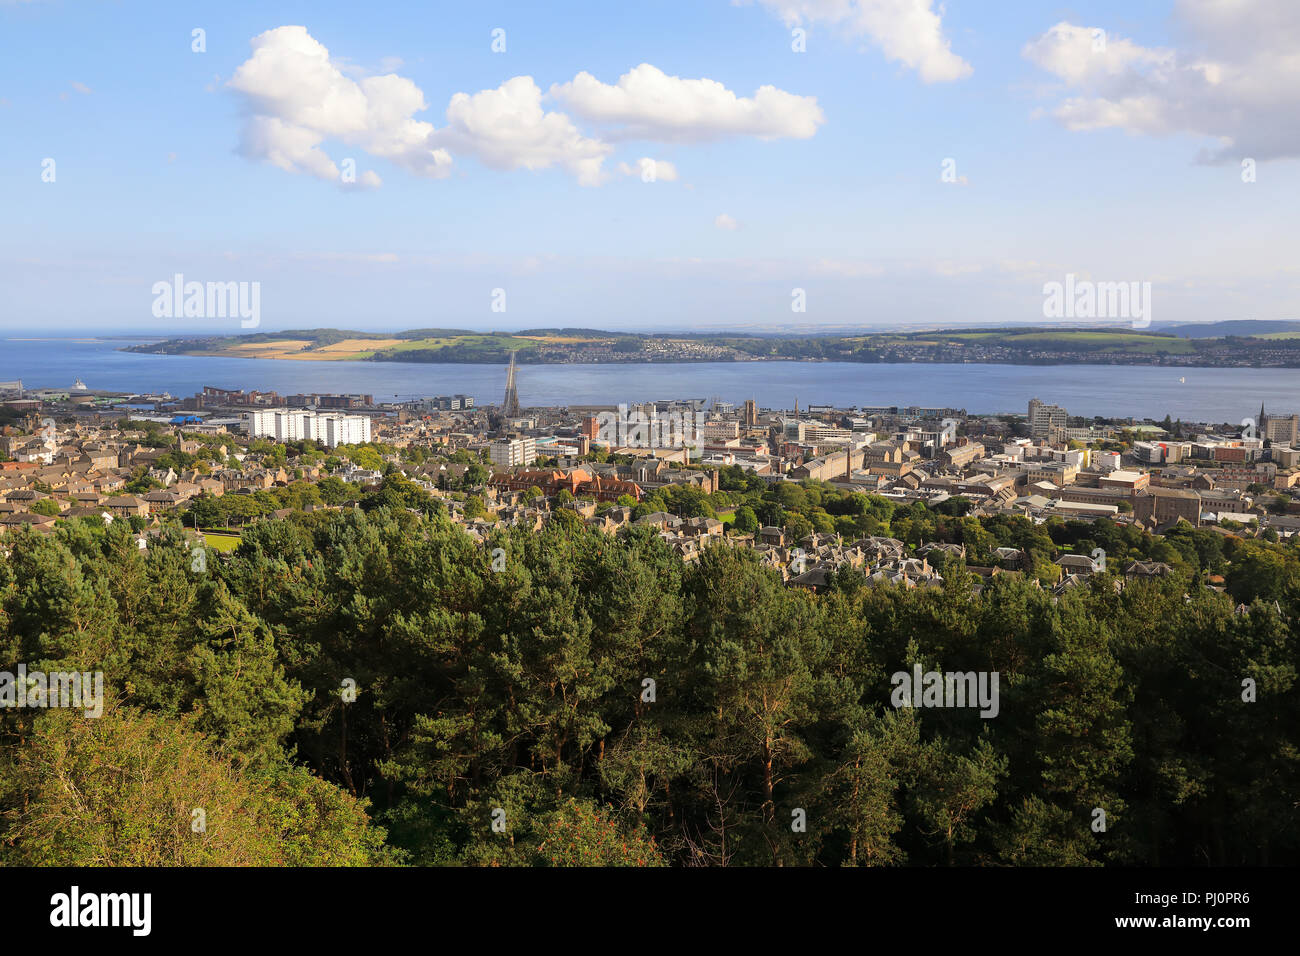 The view from Dundee Law, over the city and the River Tay, in Scotland, UK - Stock Image